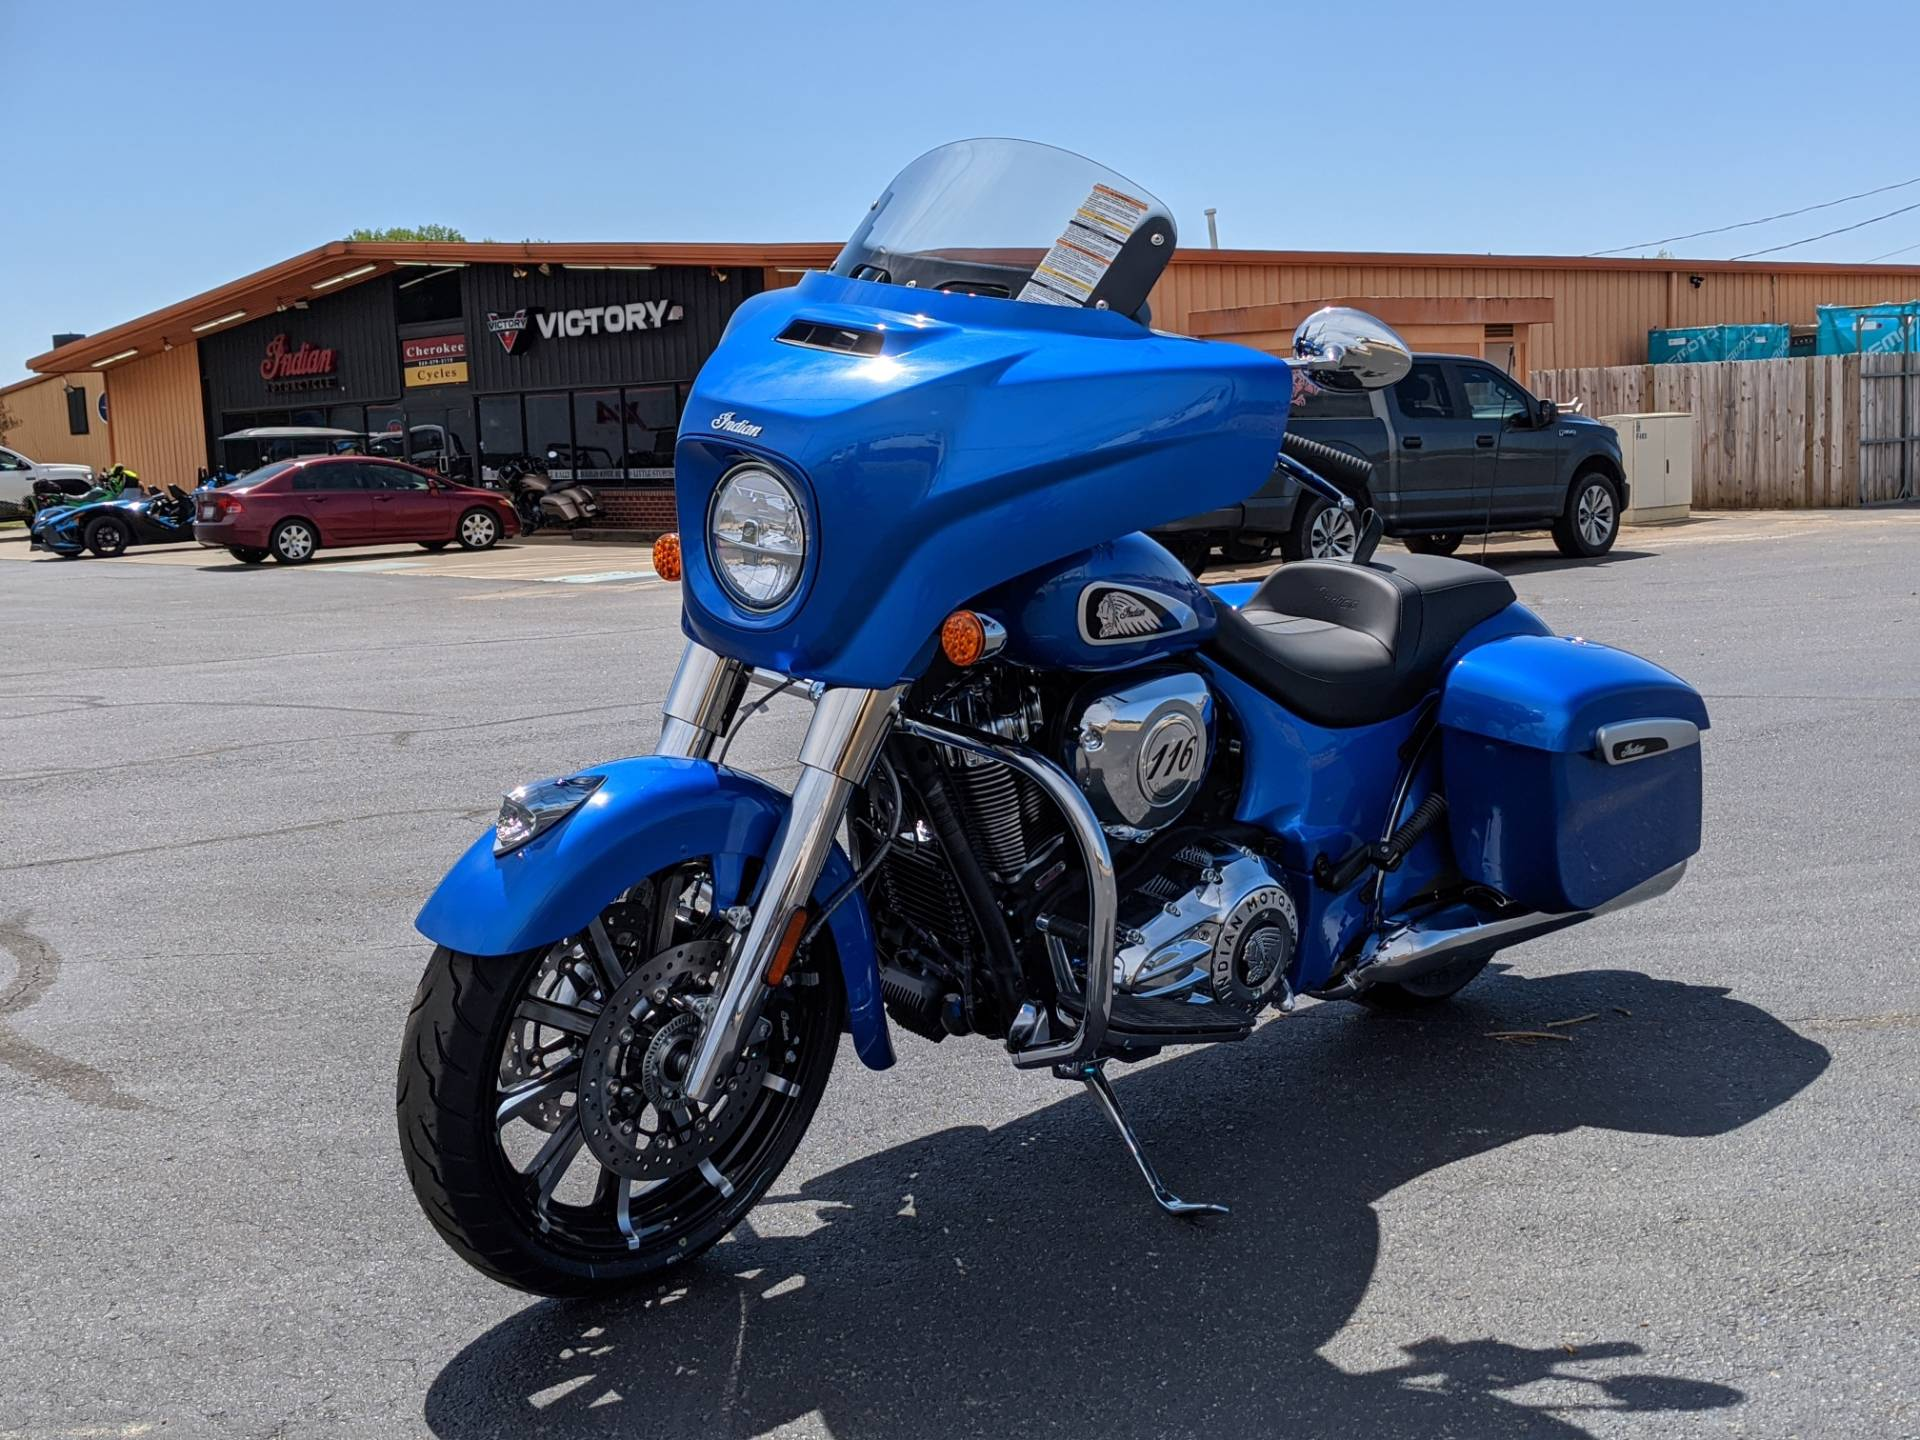 2020 Indian Chieftain Limited - Photo 4